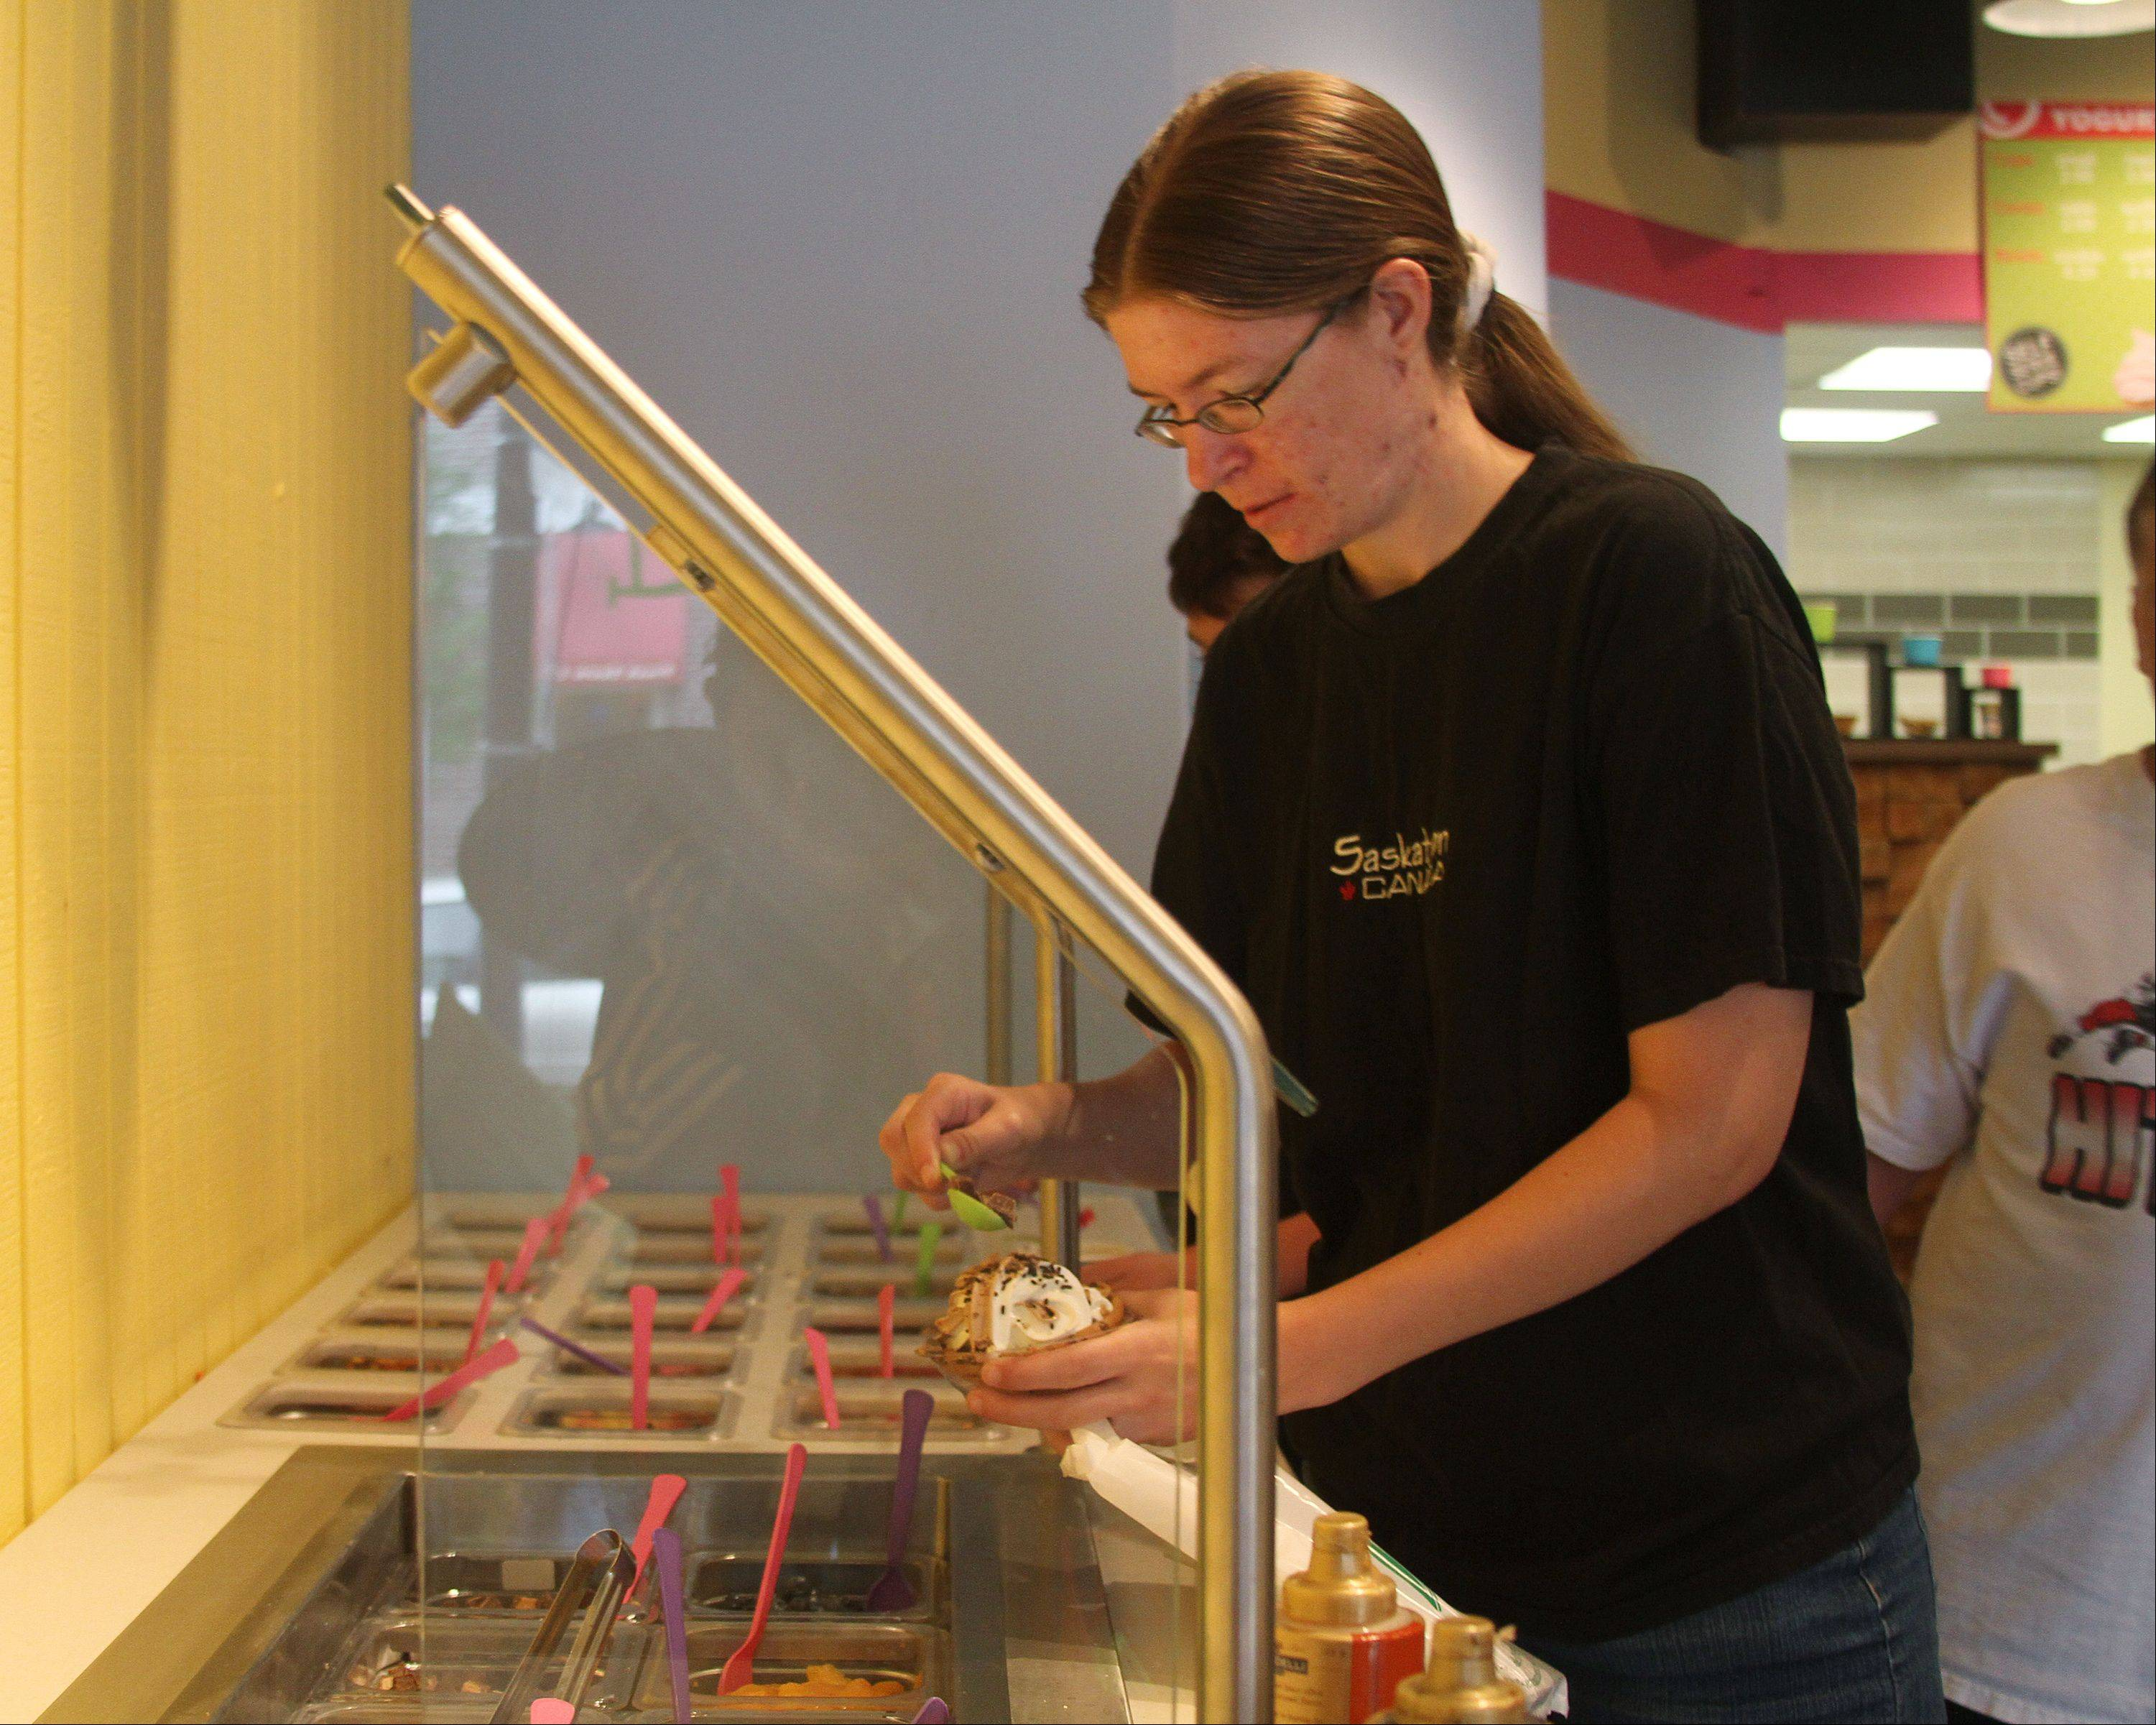 Kelly Mueller of Naperville tops her chocolate and vanilla swill frozen yogurt at the new B Happy Cafe at 206 S. Washington St. in downtown Naperville. The cafe opened July 13 featuring self-serve frozen yogurt in three sizes without a scale for pricing based on weight.